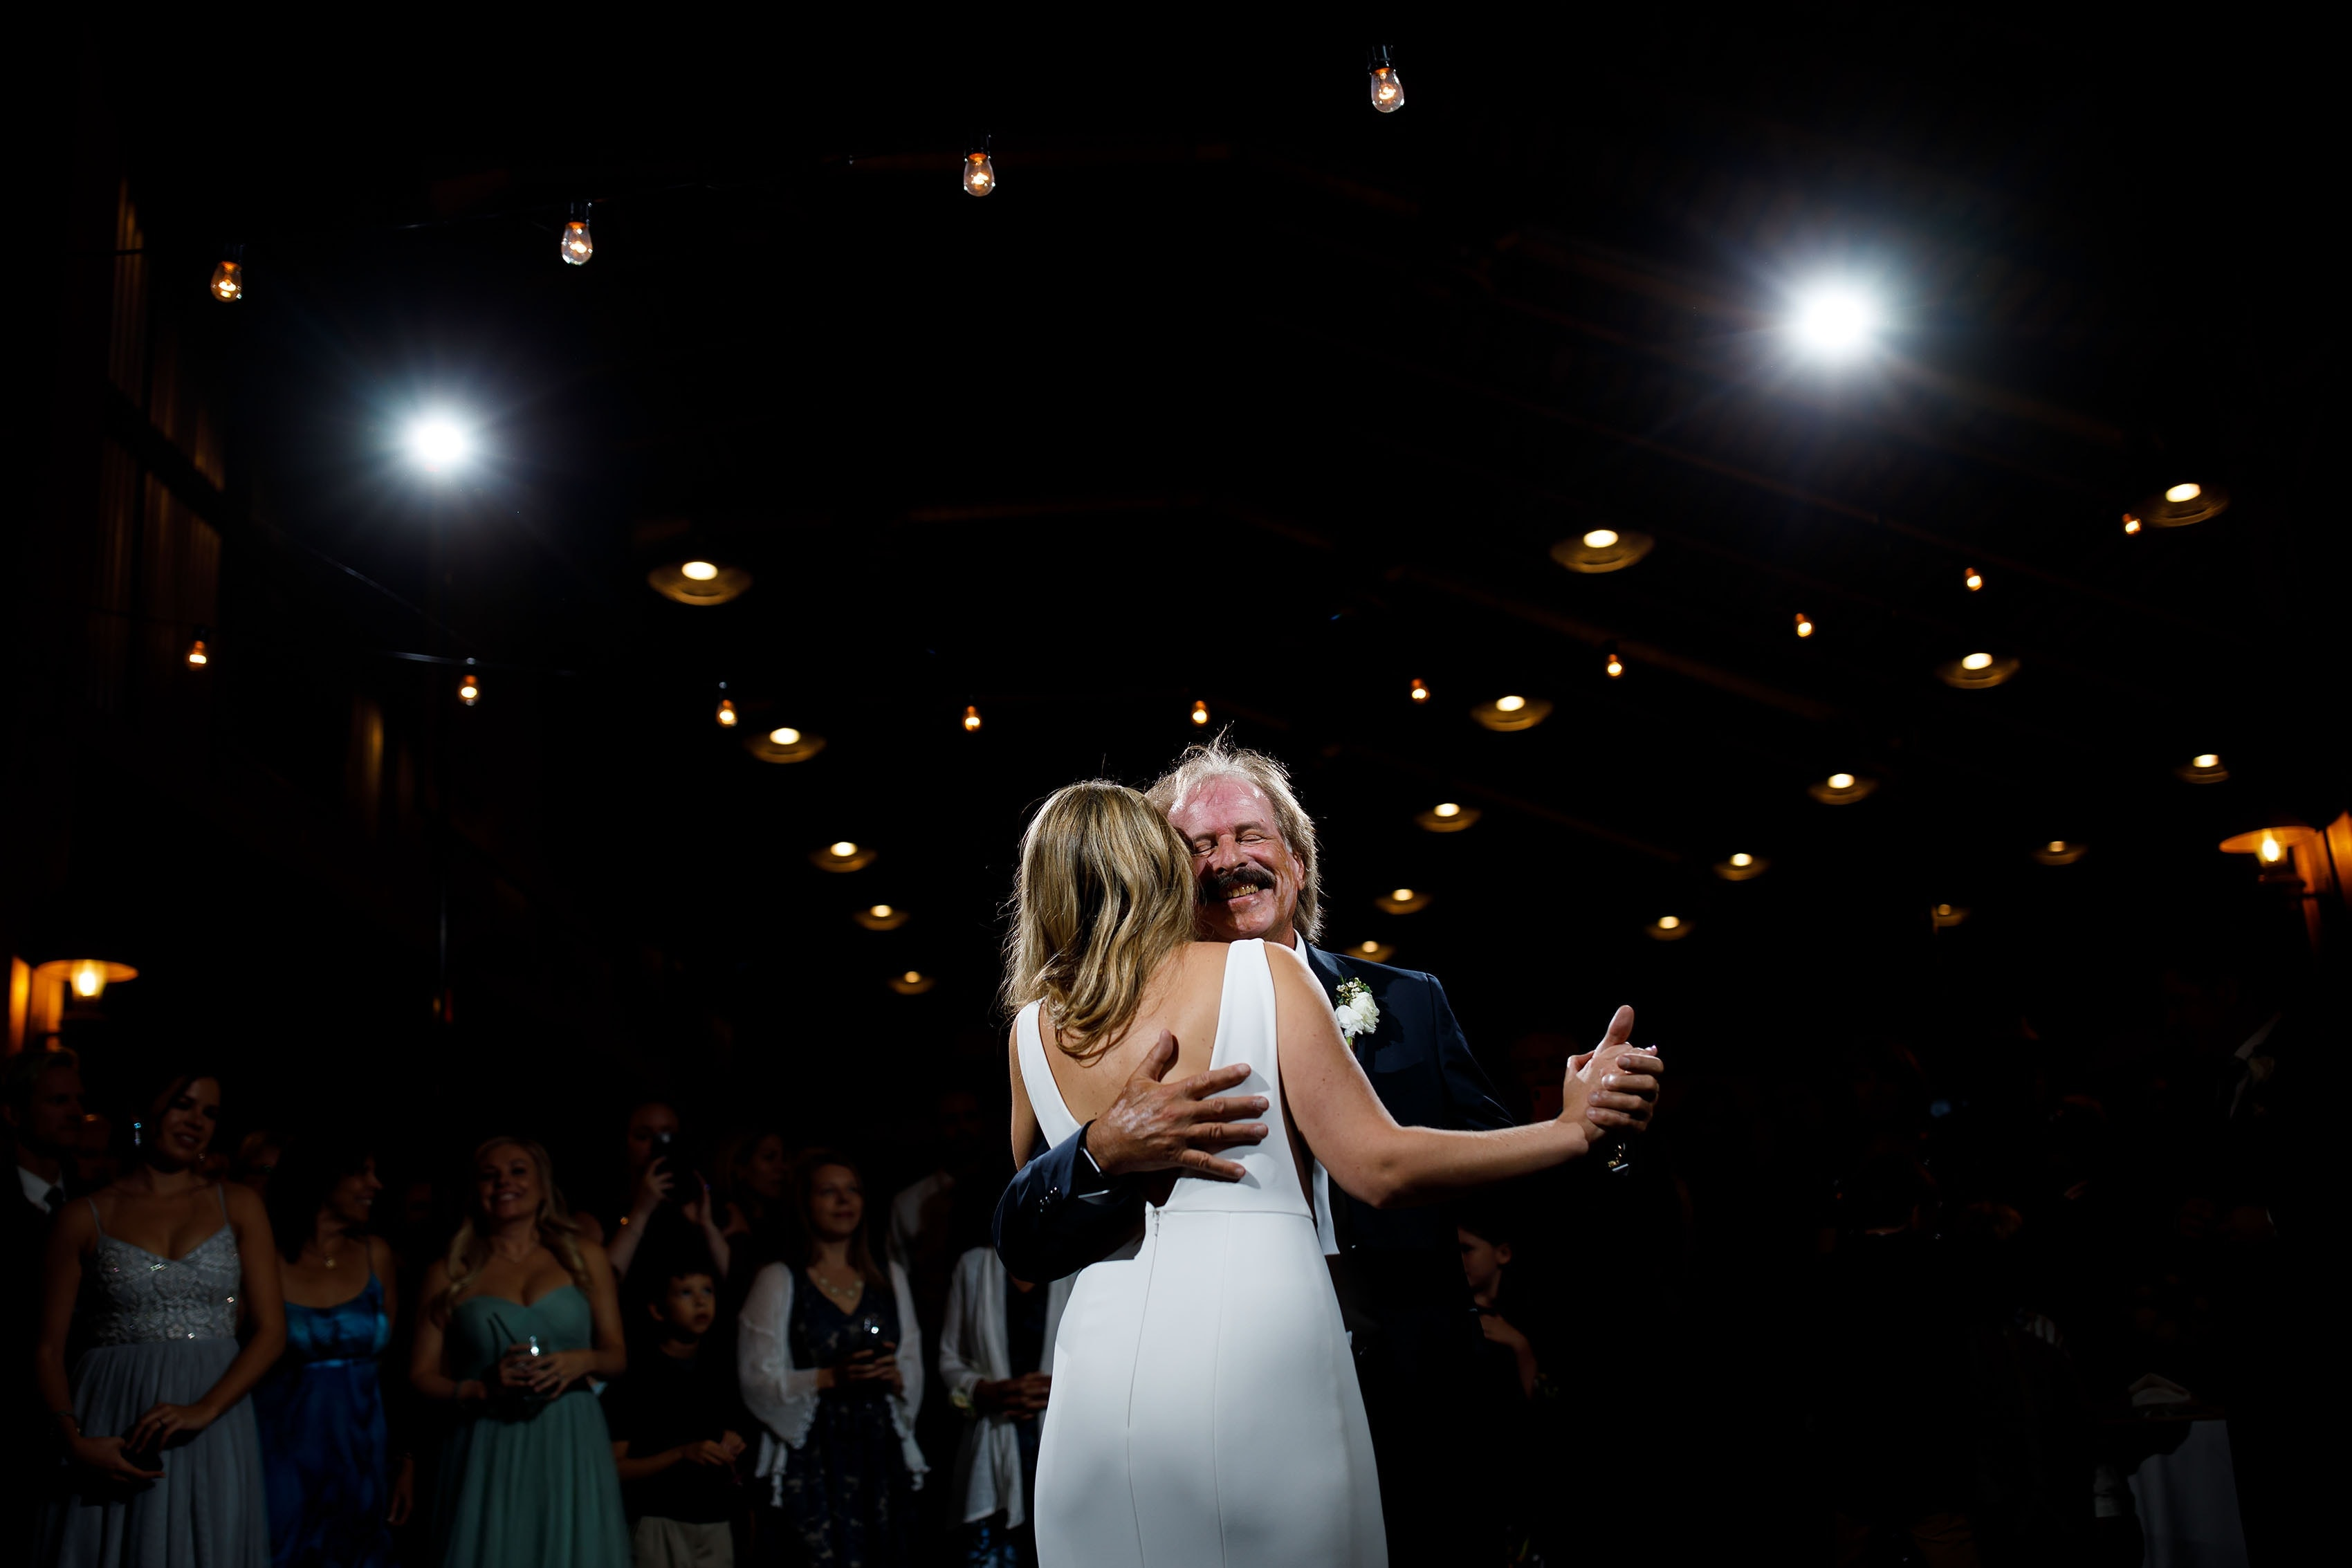 Heather dances with her father